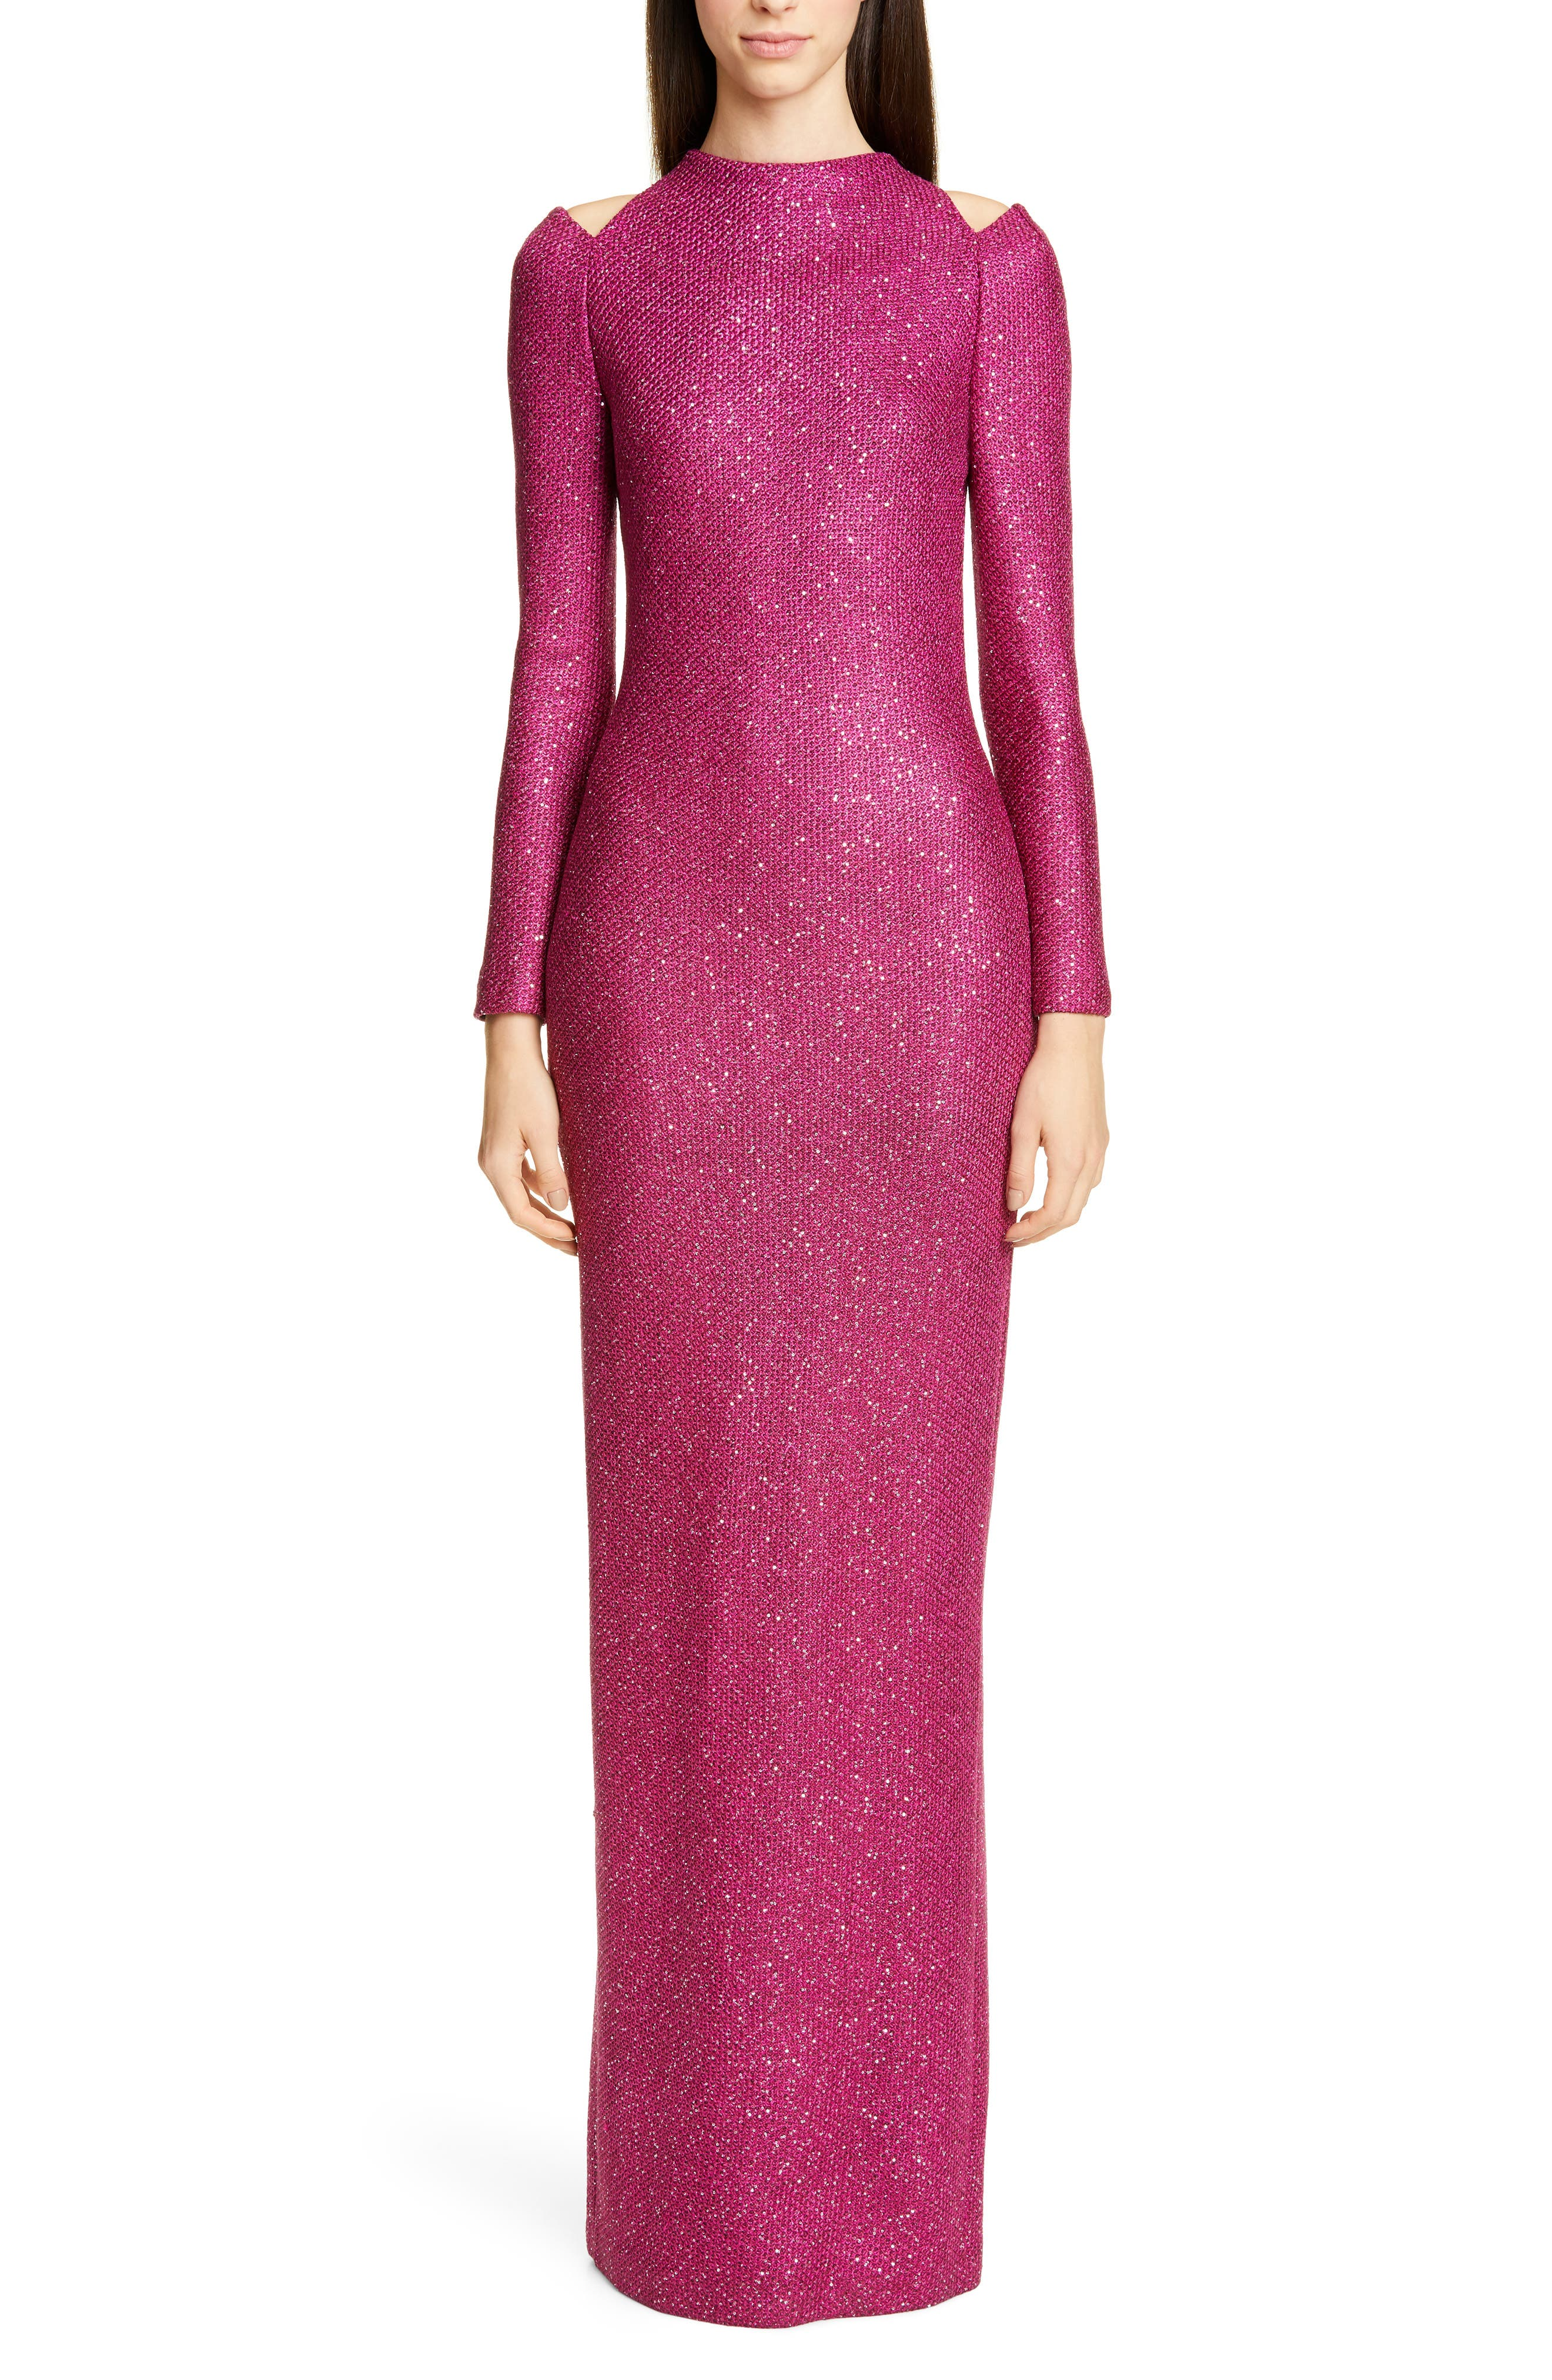 St. John Collection Luxe Long Sleeve Sequin Tuck Knit Gown, Pink